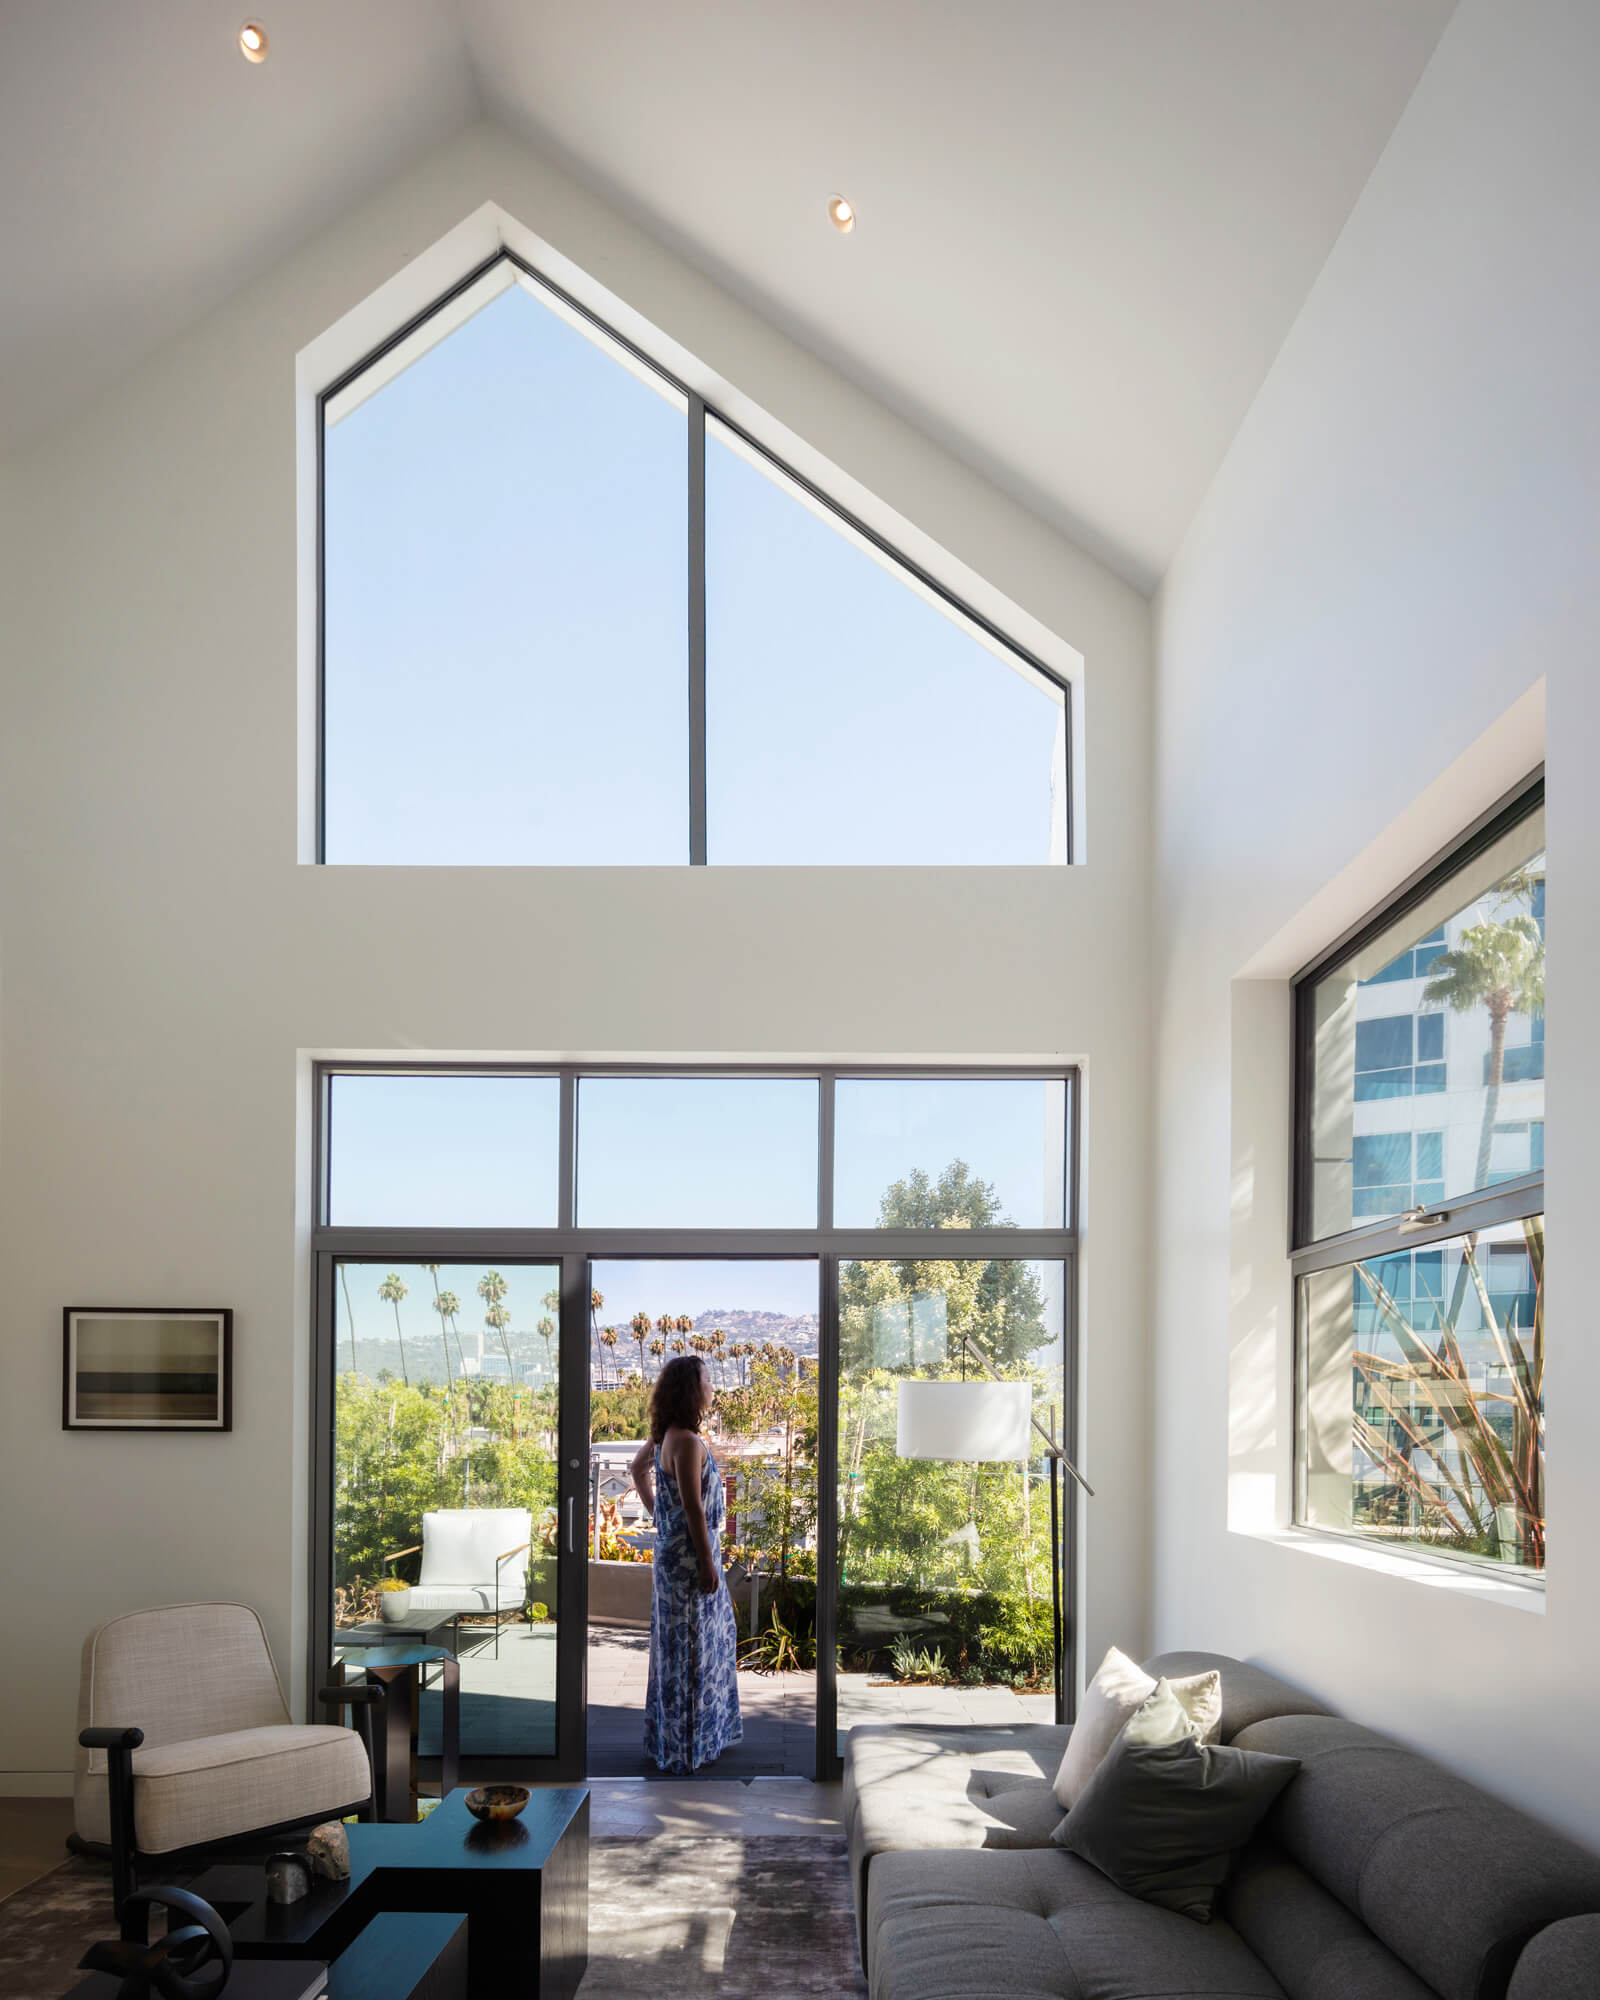 Inside the light filled, lavish apartments | Gardenhouse by MAD Architects | STIRworld